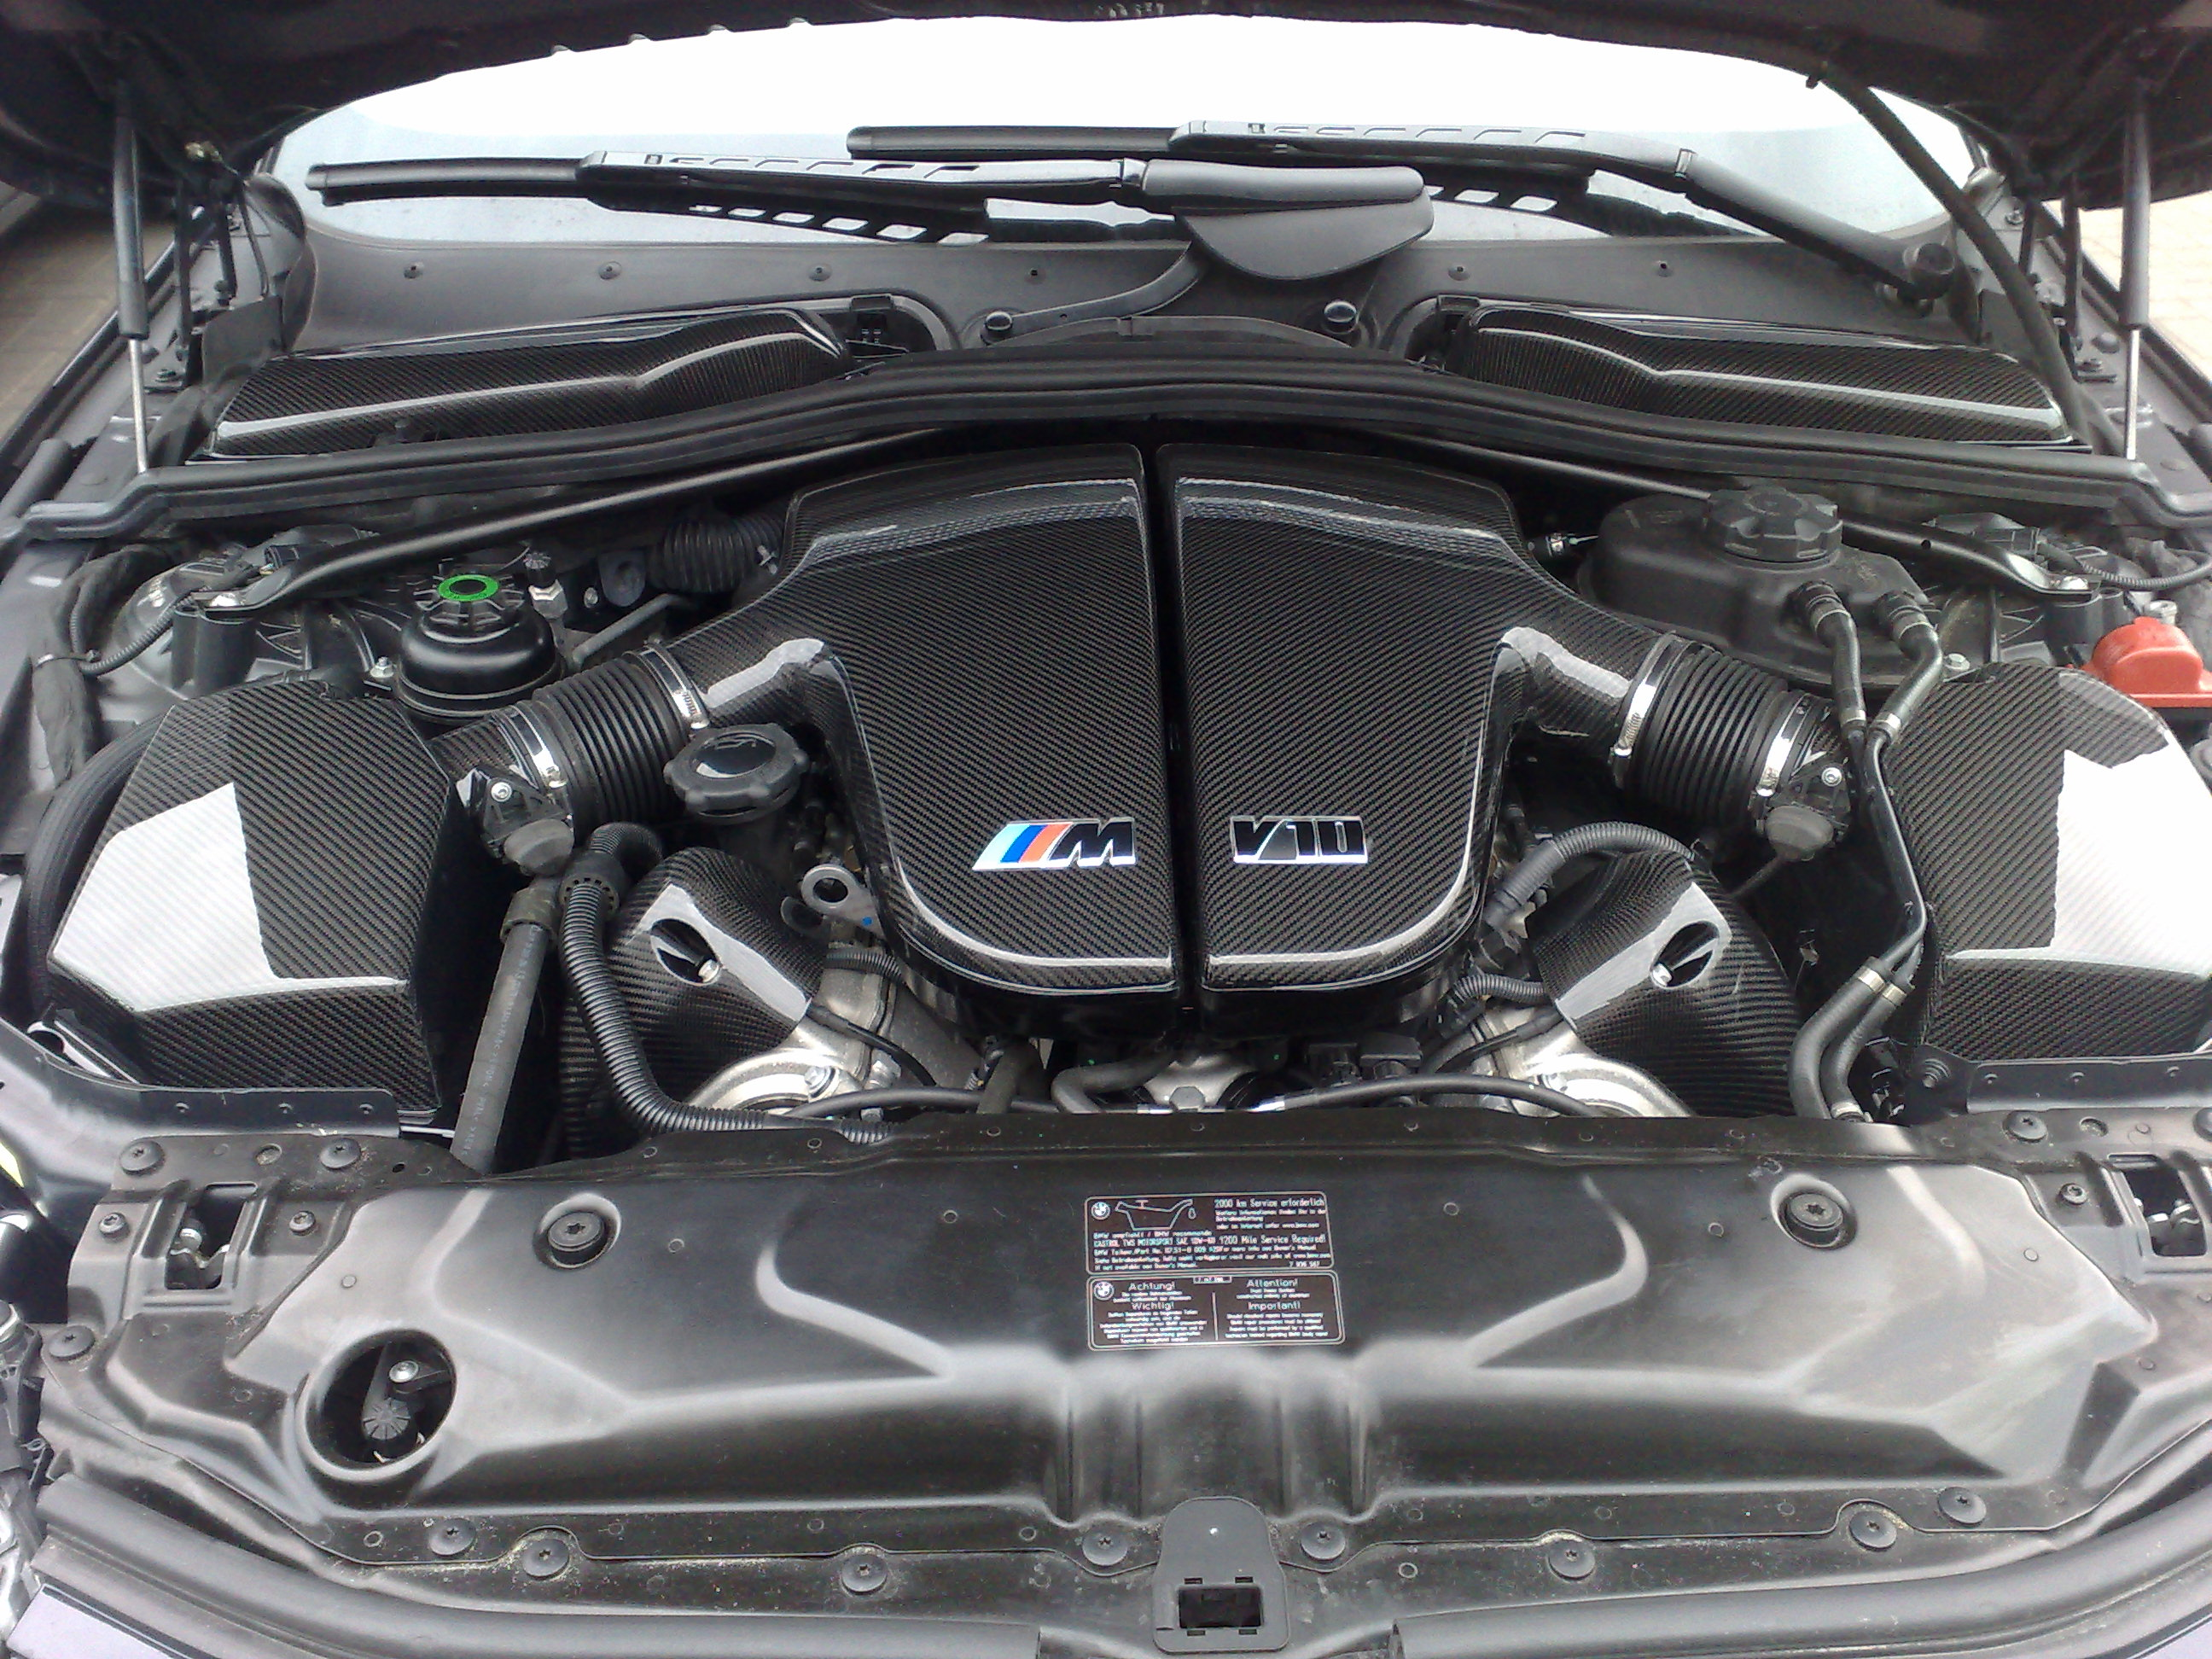 Carbon fibre in engine bay pics - BMW M5 Forum and M6 Forums